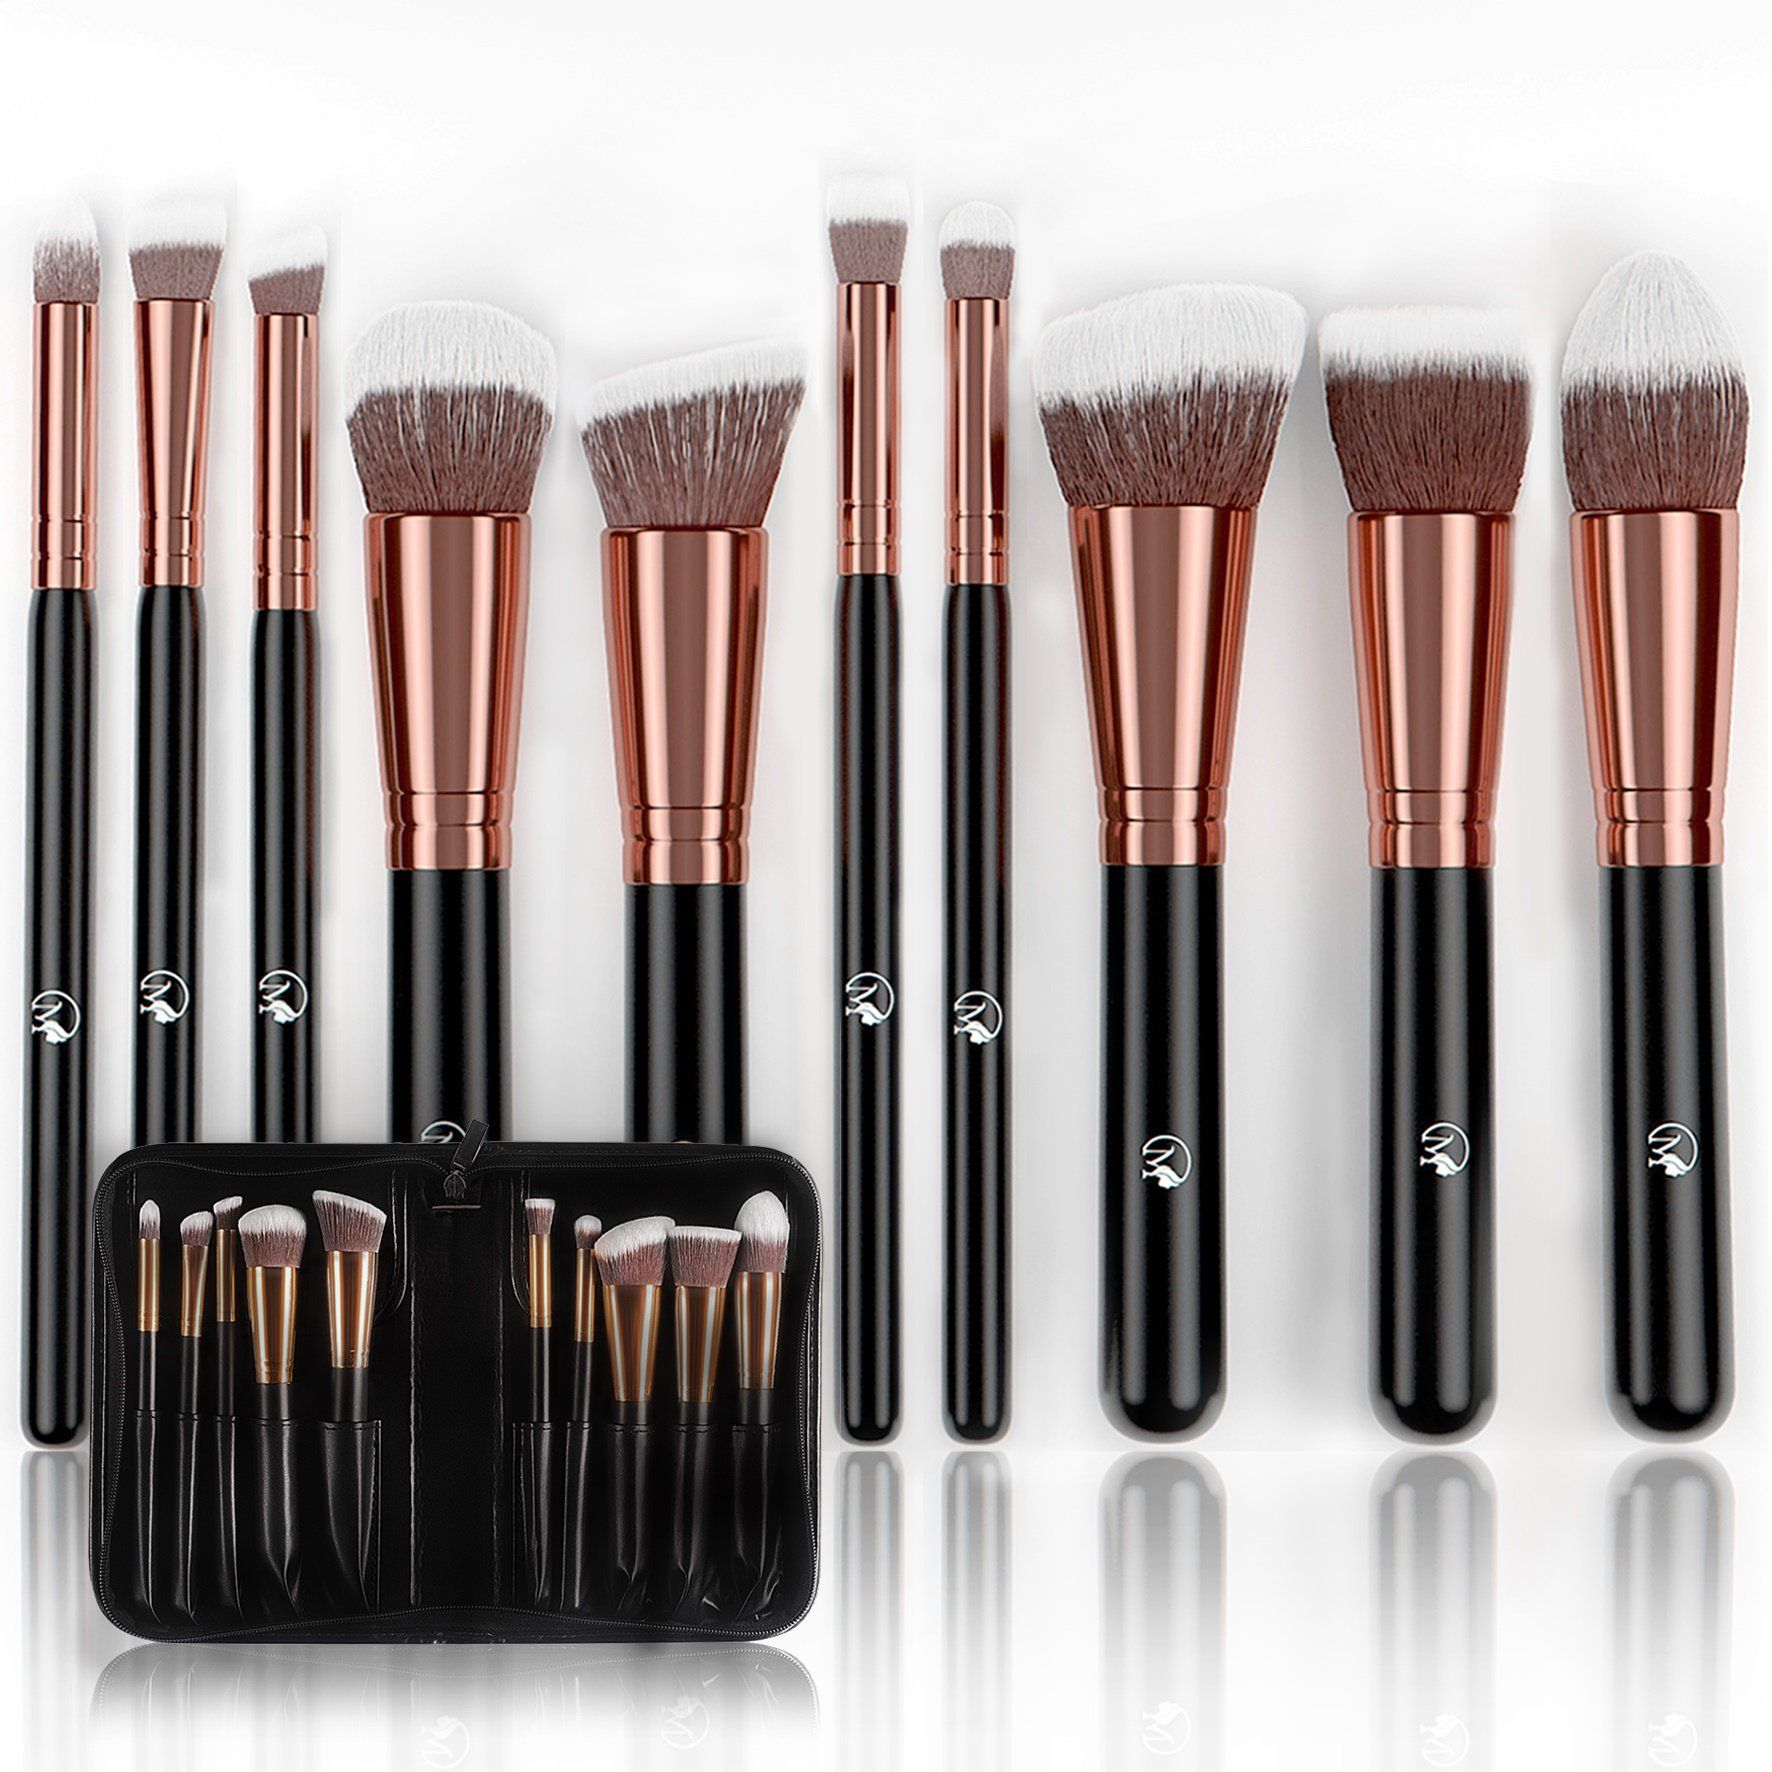 Magnifeko Professional Makeup Brushes Set With case (10